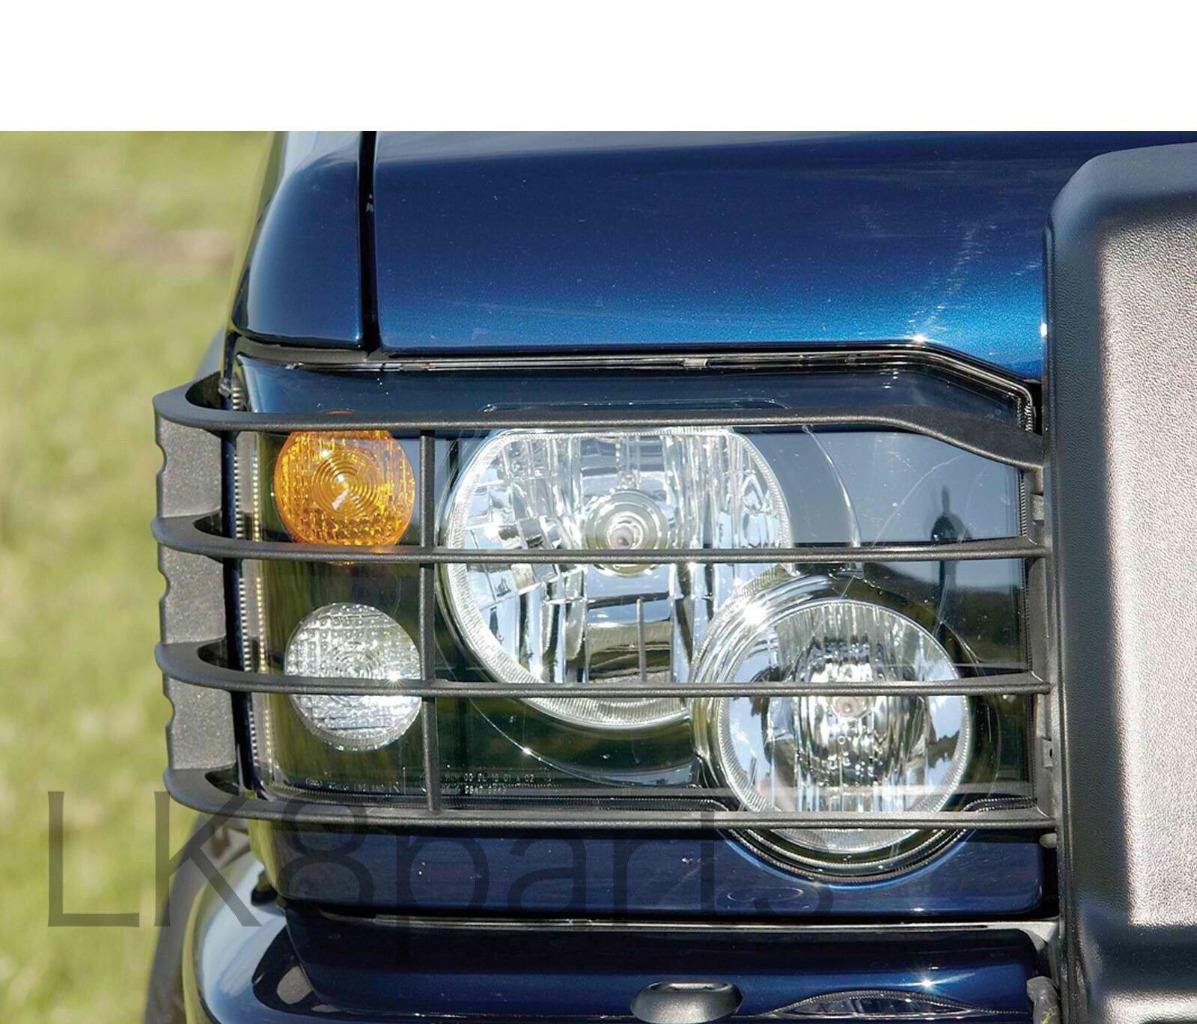 LAND ROVER DISCOVERY 2 2003-2004 HEADLAMP FRONT LIGHT